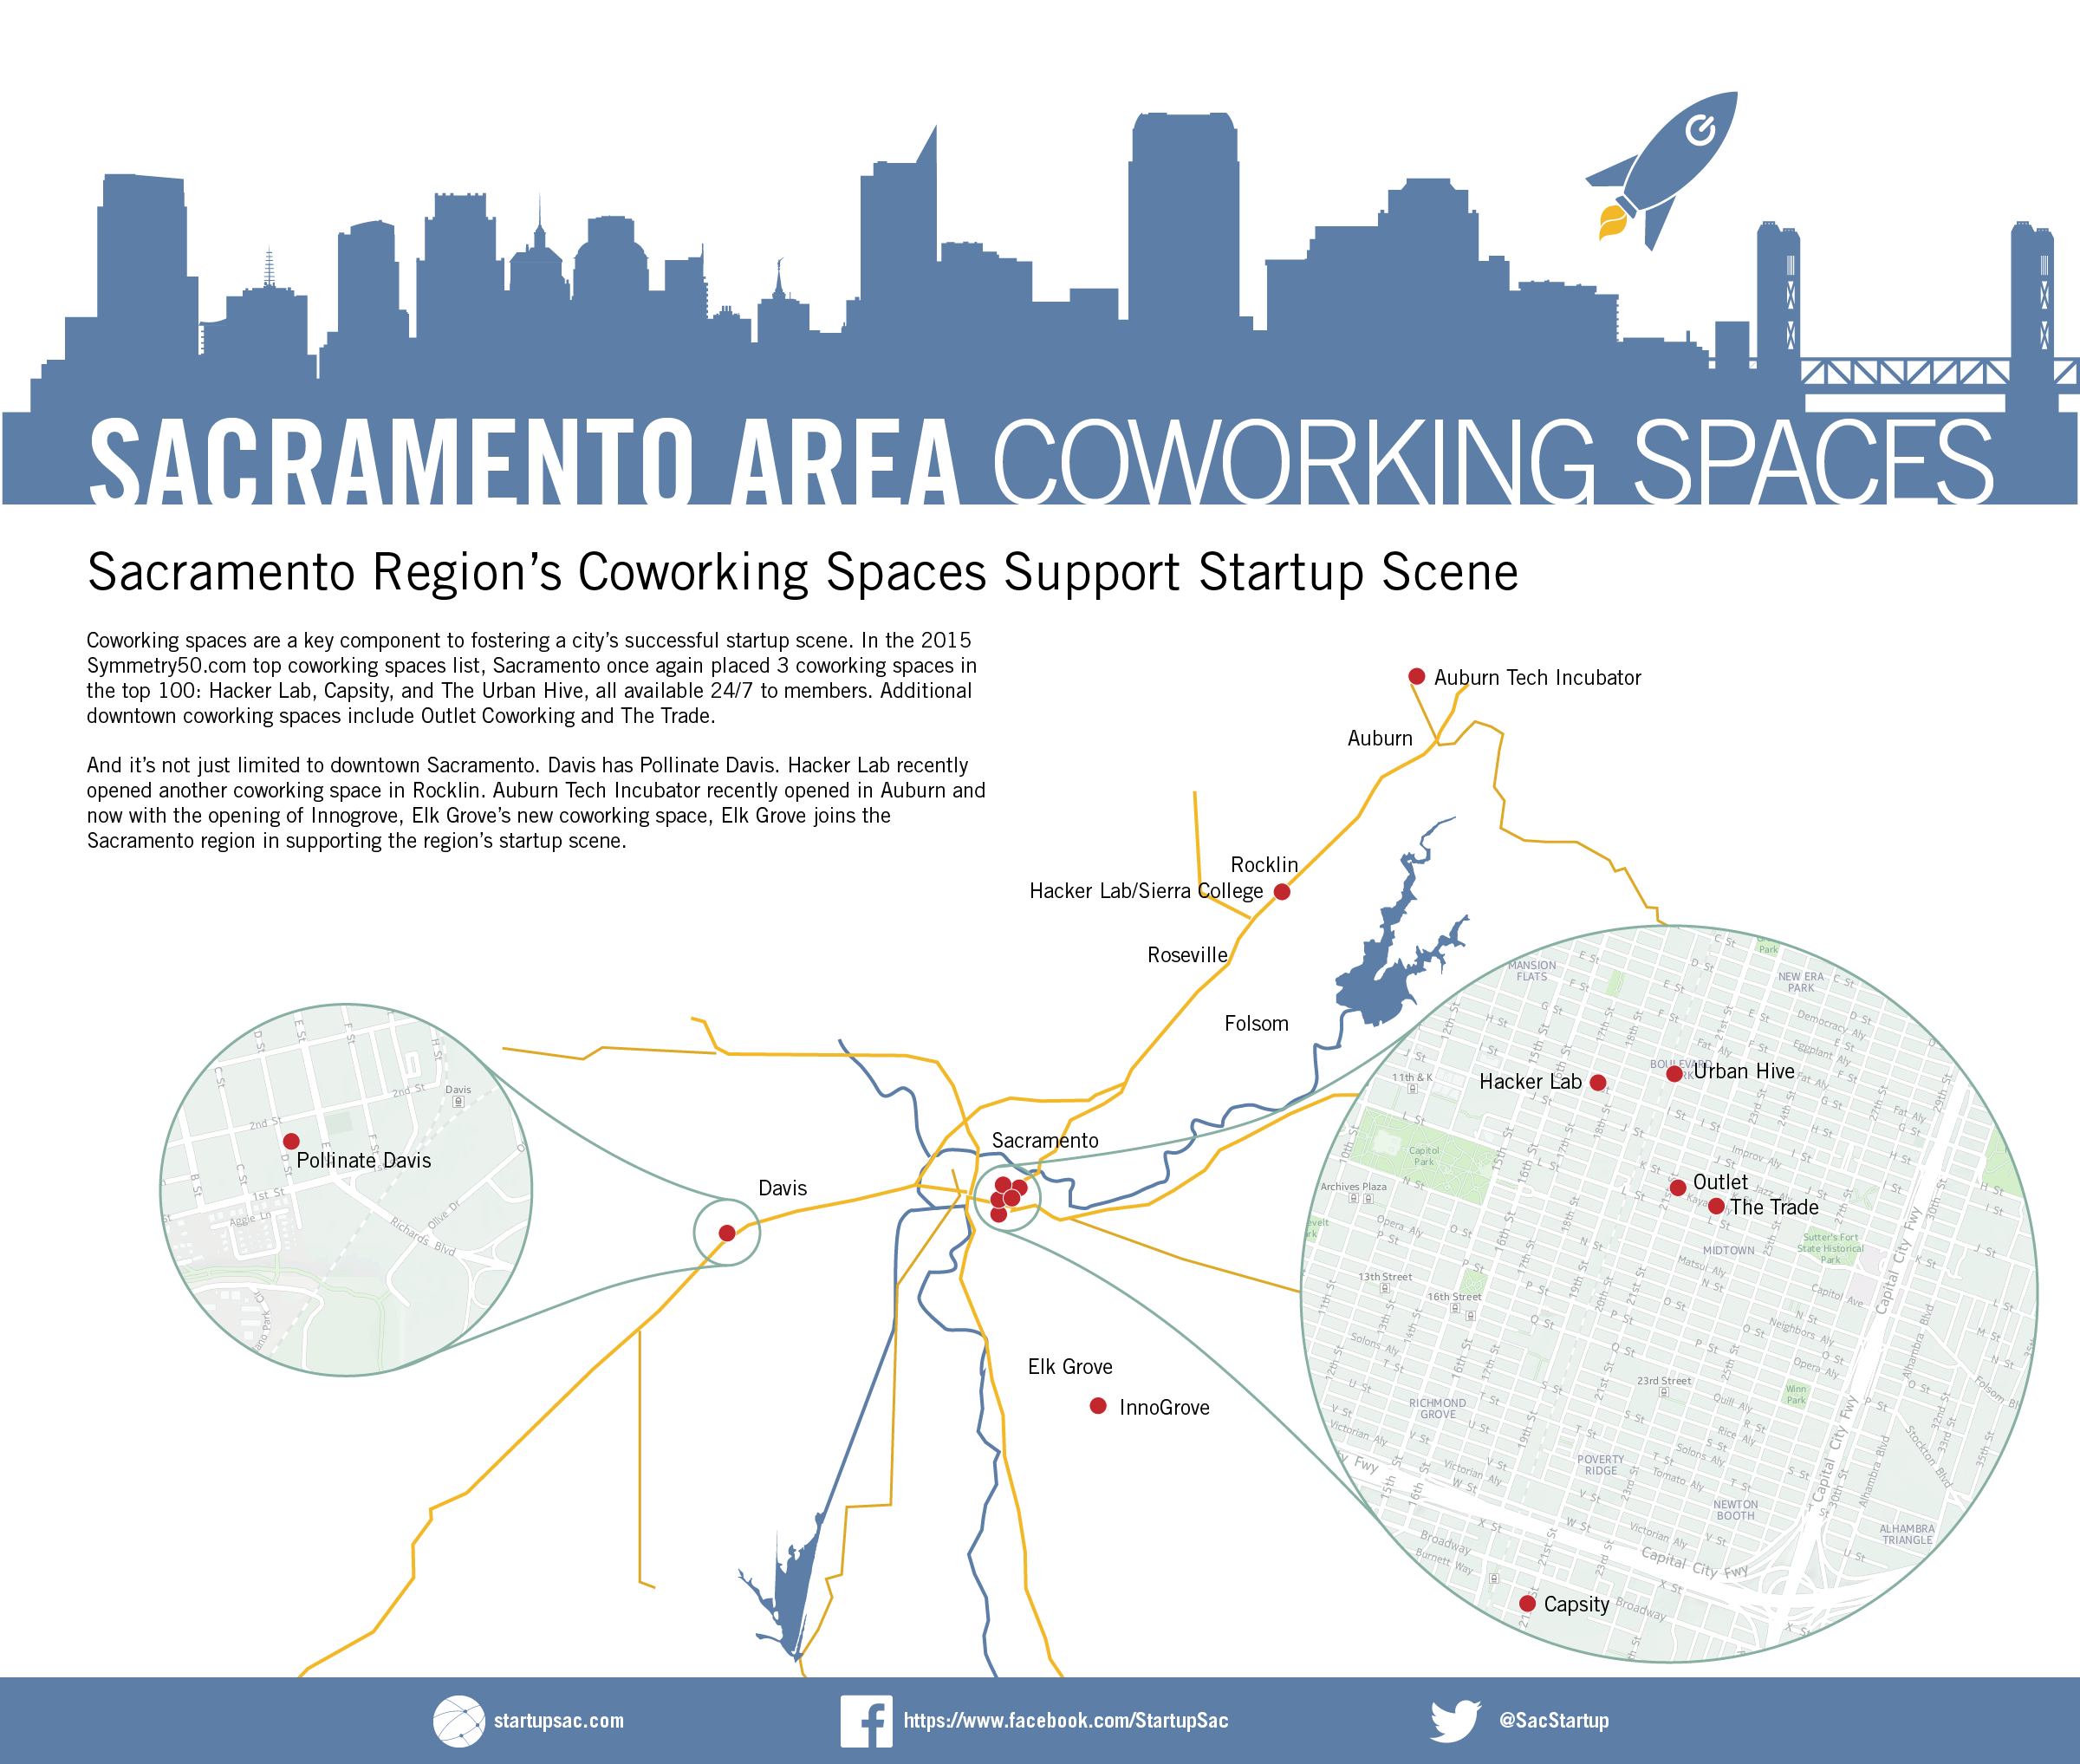 Sacramento Region's Coworking Spaces Support Startup Scene